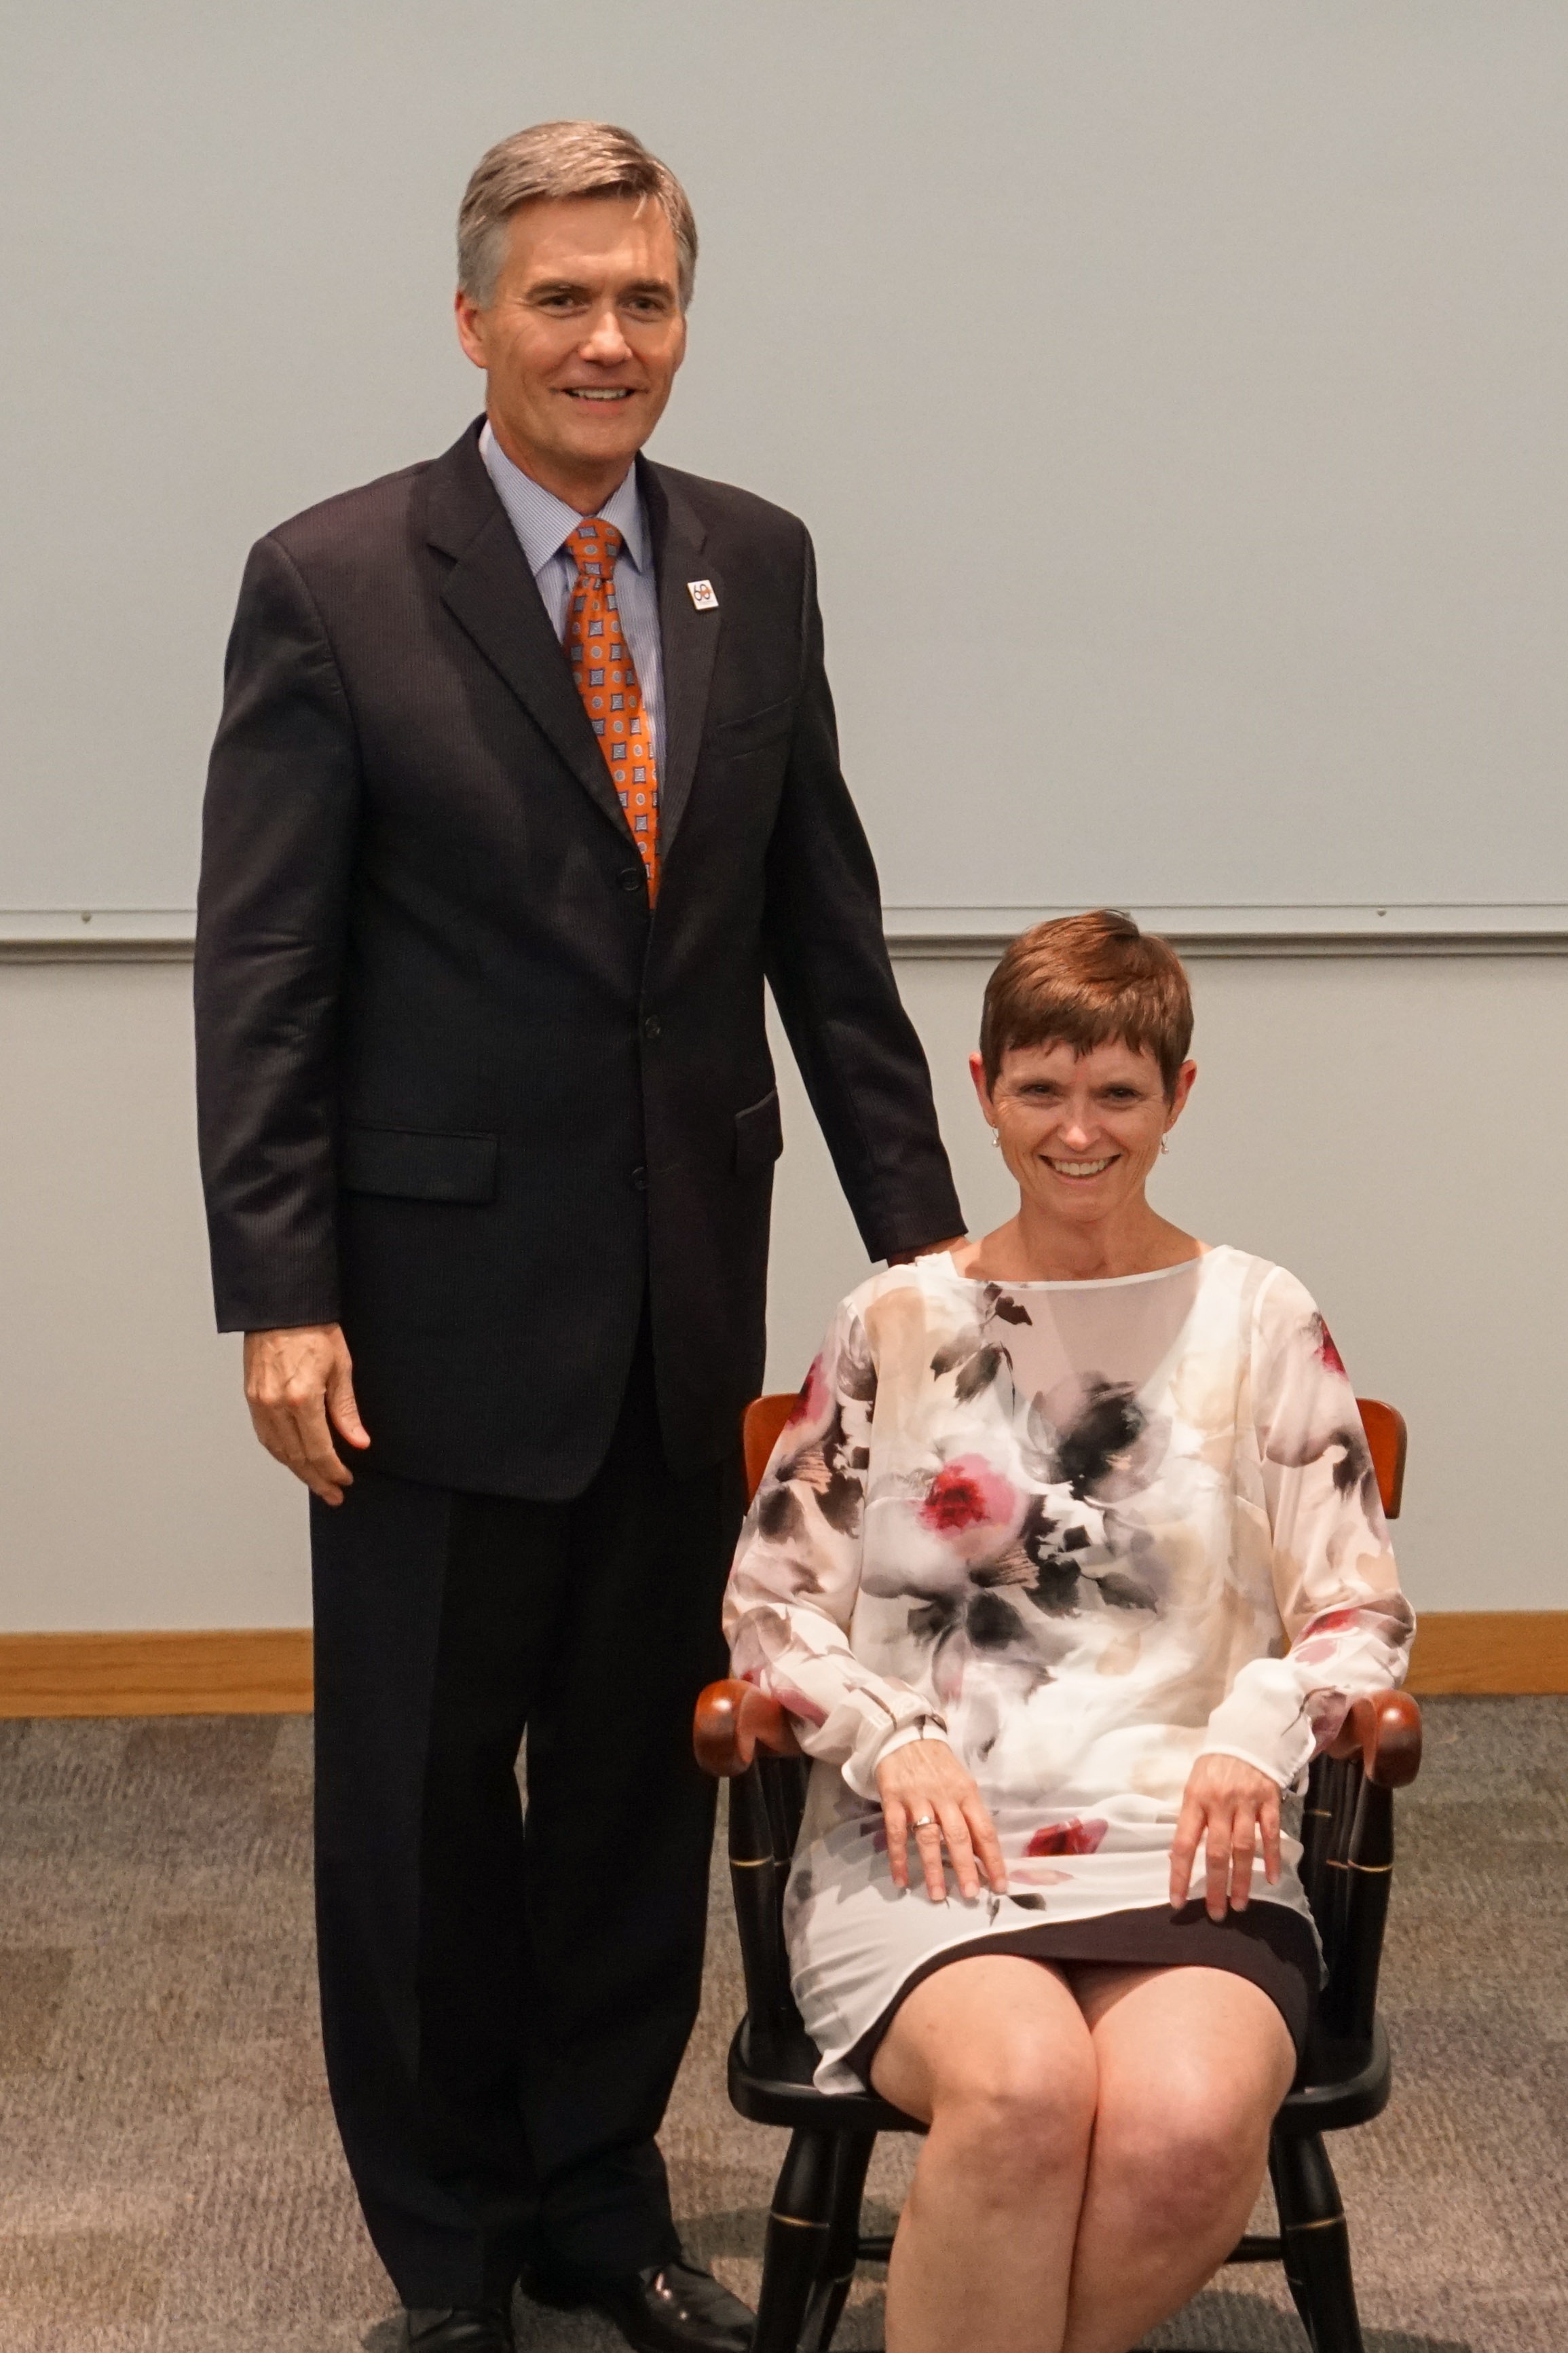 Dean Good presents Dr. Carol Mathews with her Brooke Professorship